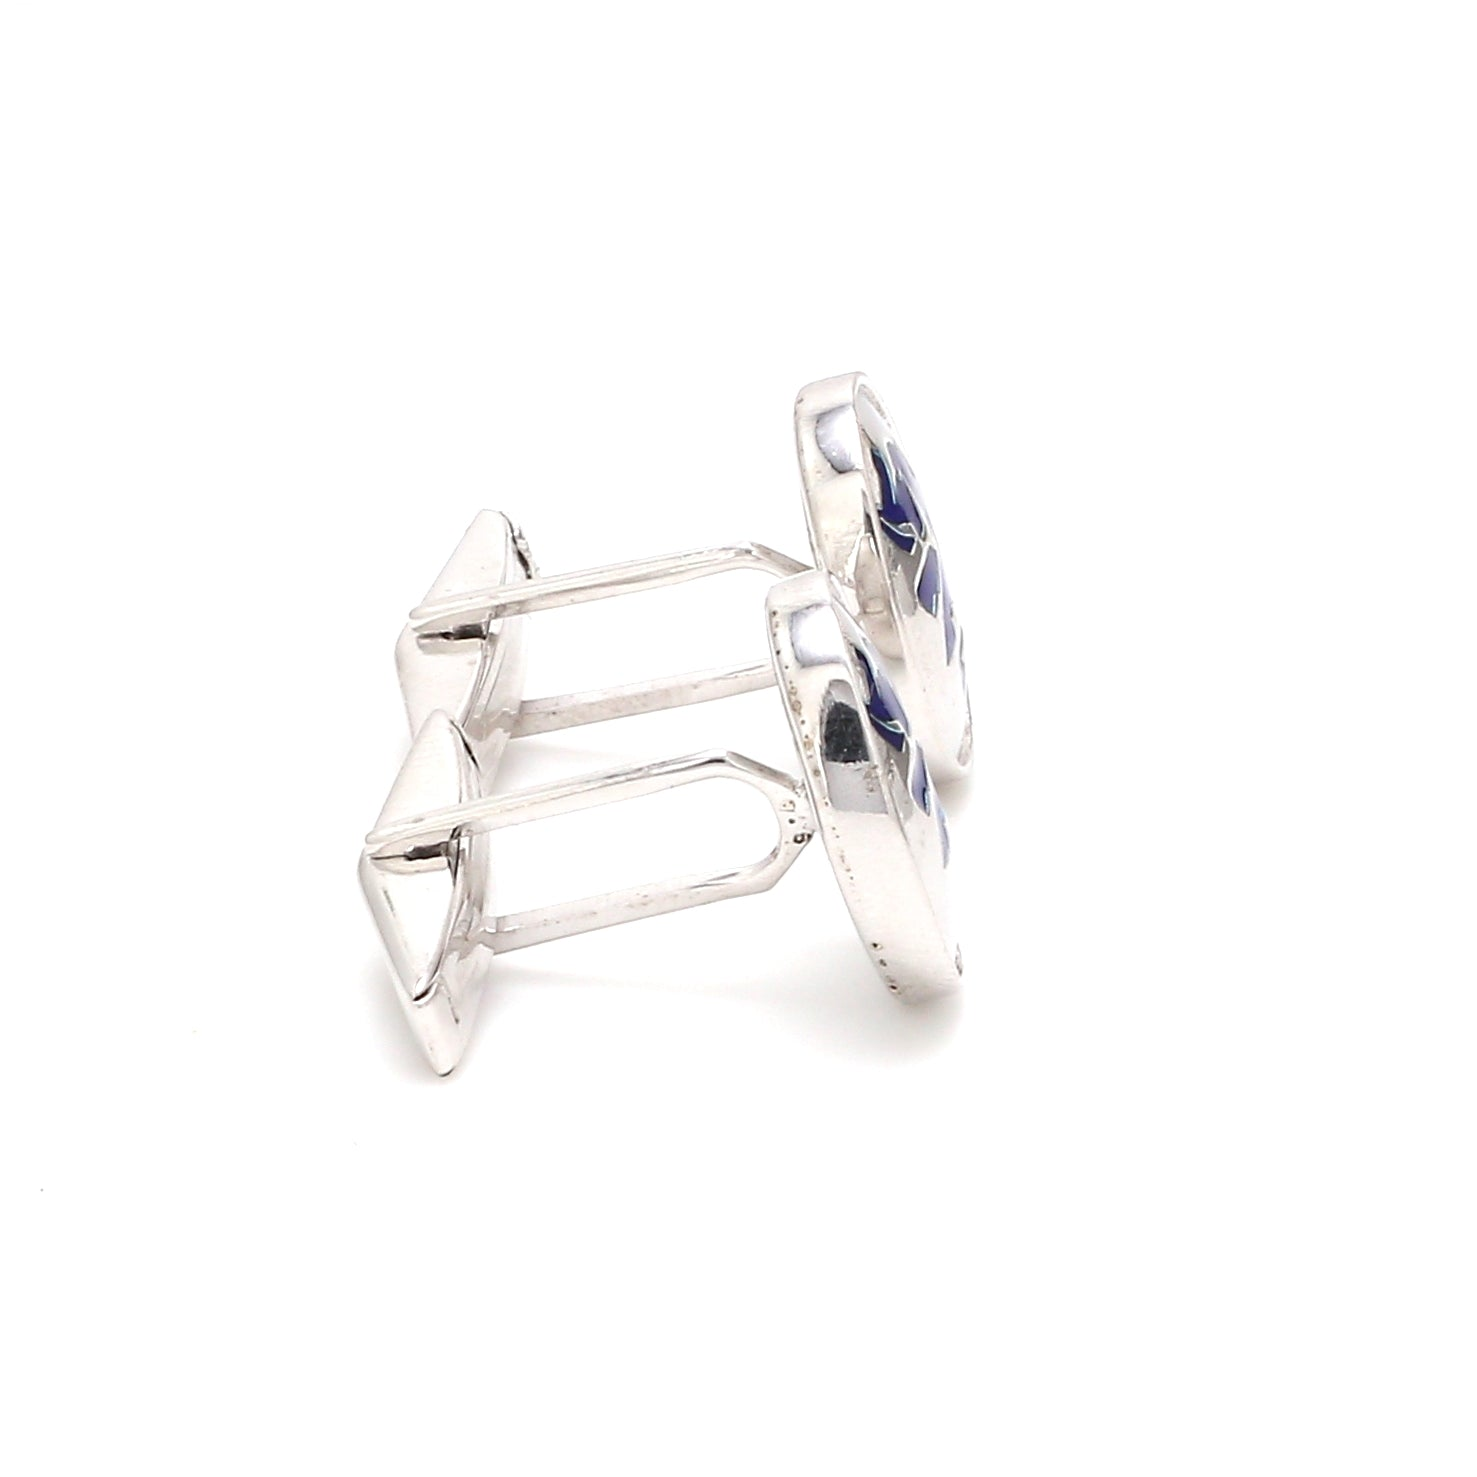 Side View of 925 Silver Cufflinks for Men with Blue Enamel JL AGC 5